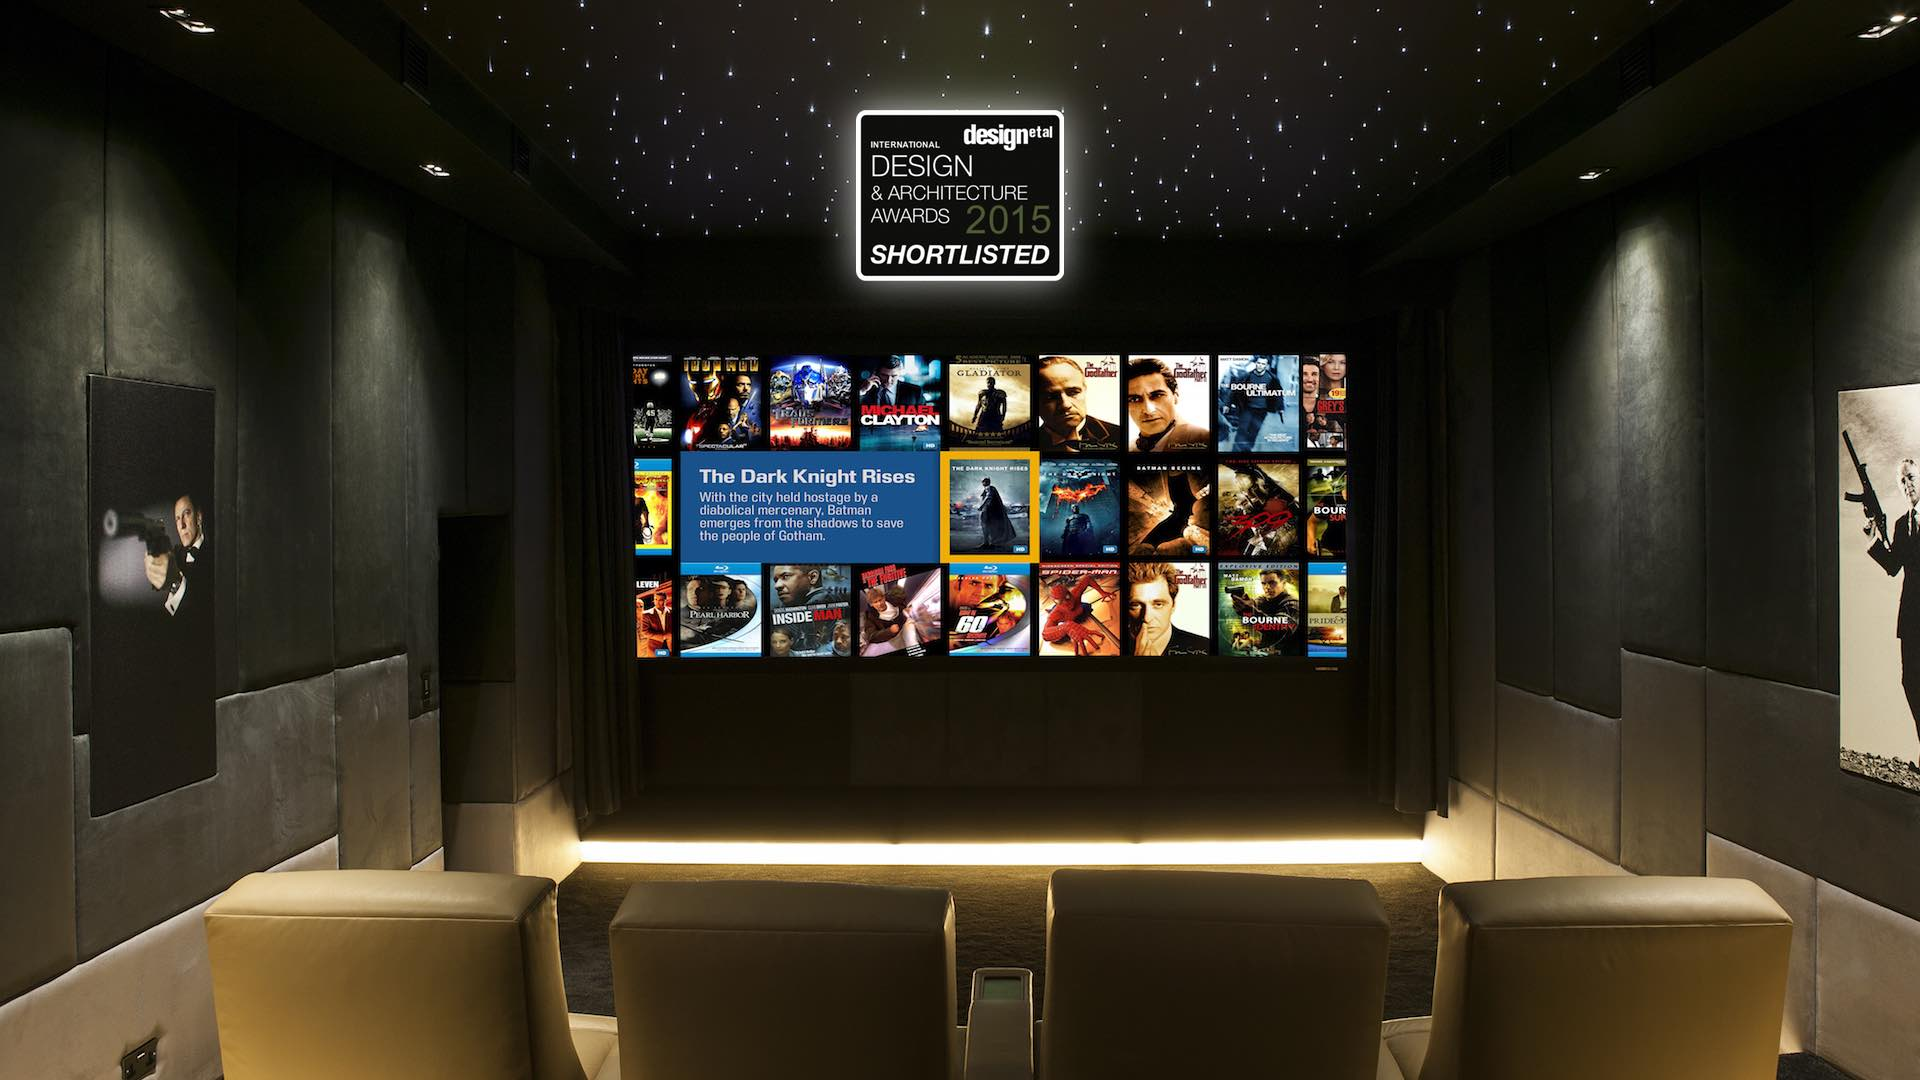 Wallpaper For Home Theater Posted By Christopher Peltier